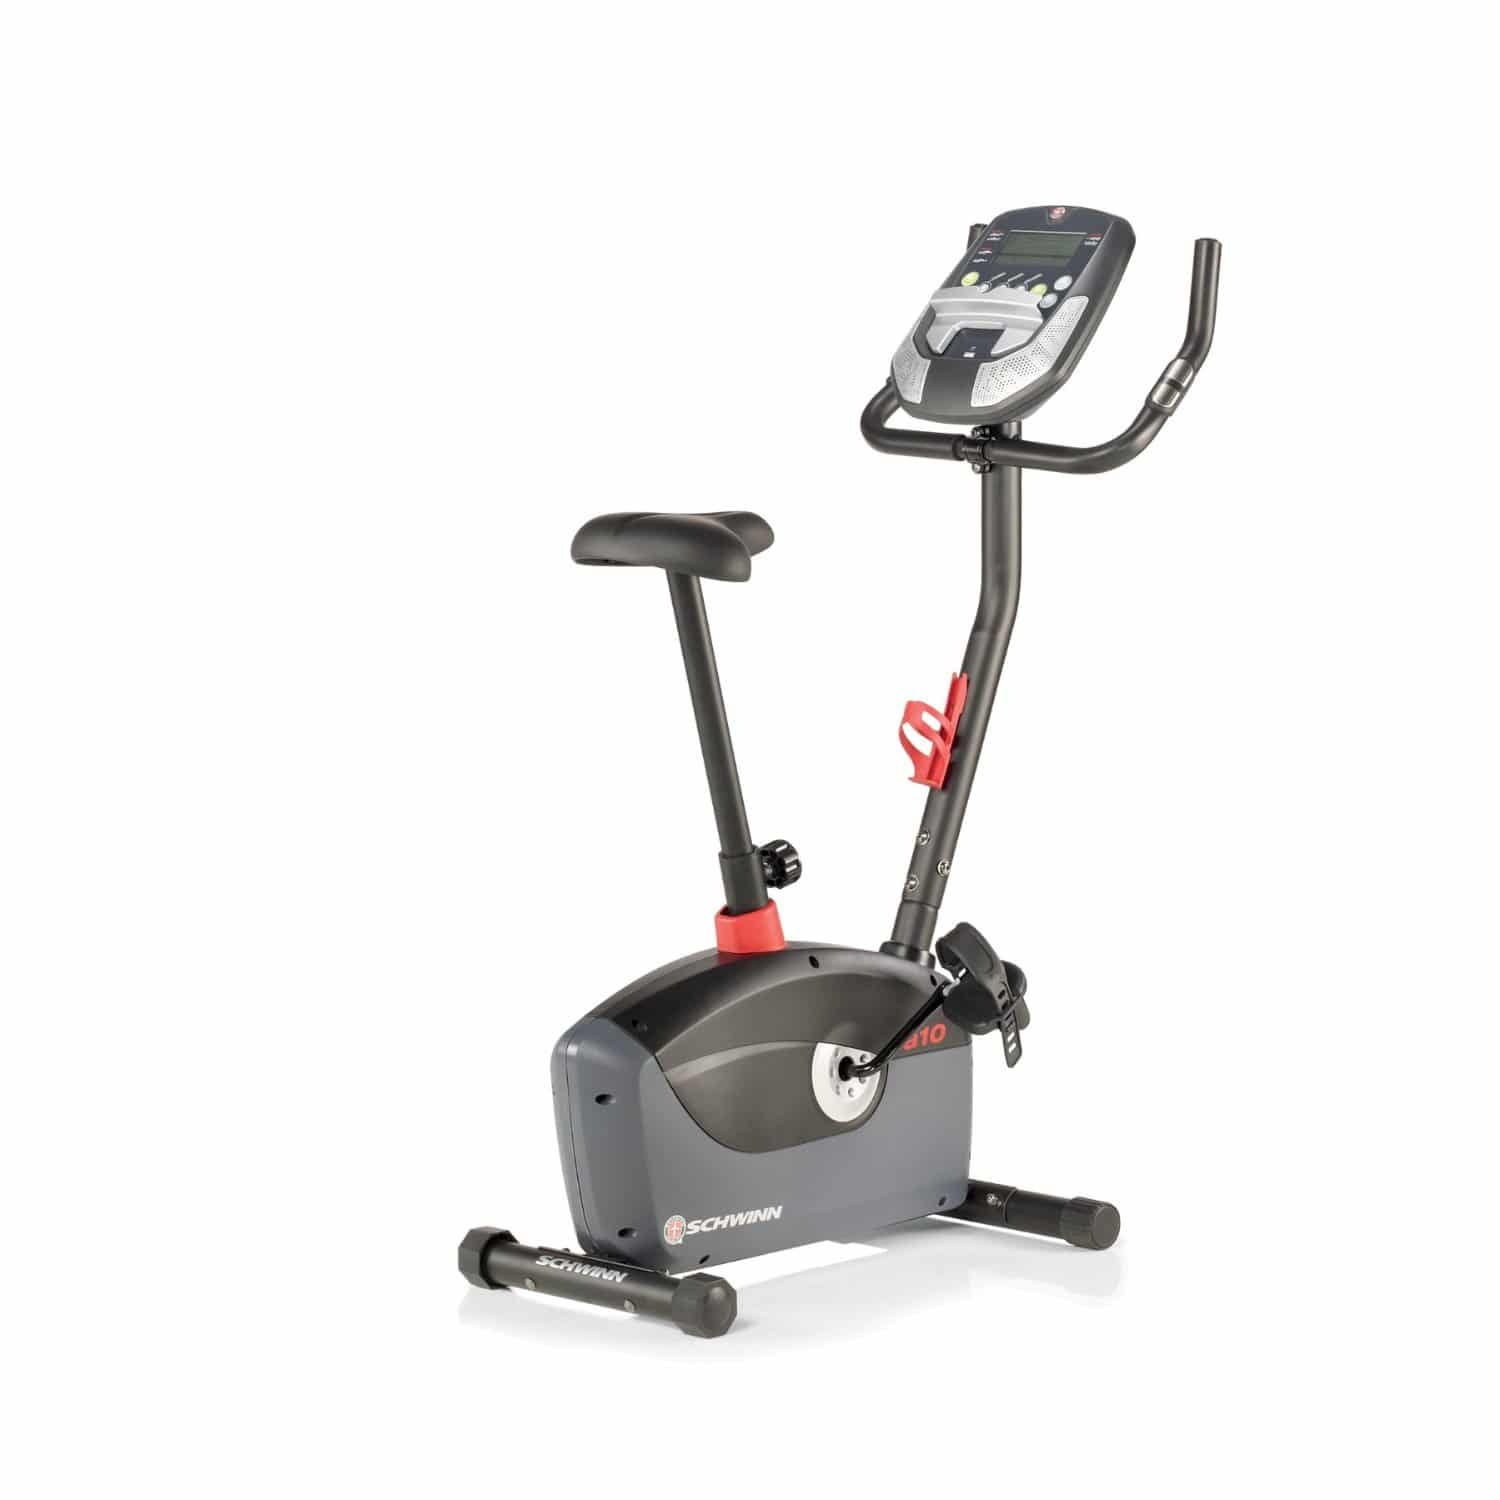 schwinn exercise bike scwinn a10 upright bike reviewed. Black Bedroom Furniture Sets. Home Design Ideas